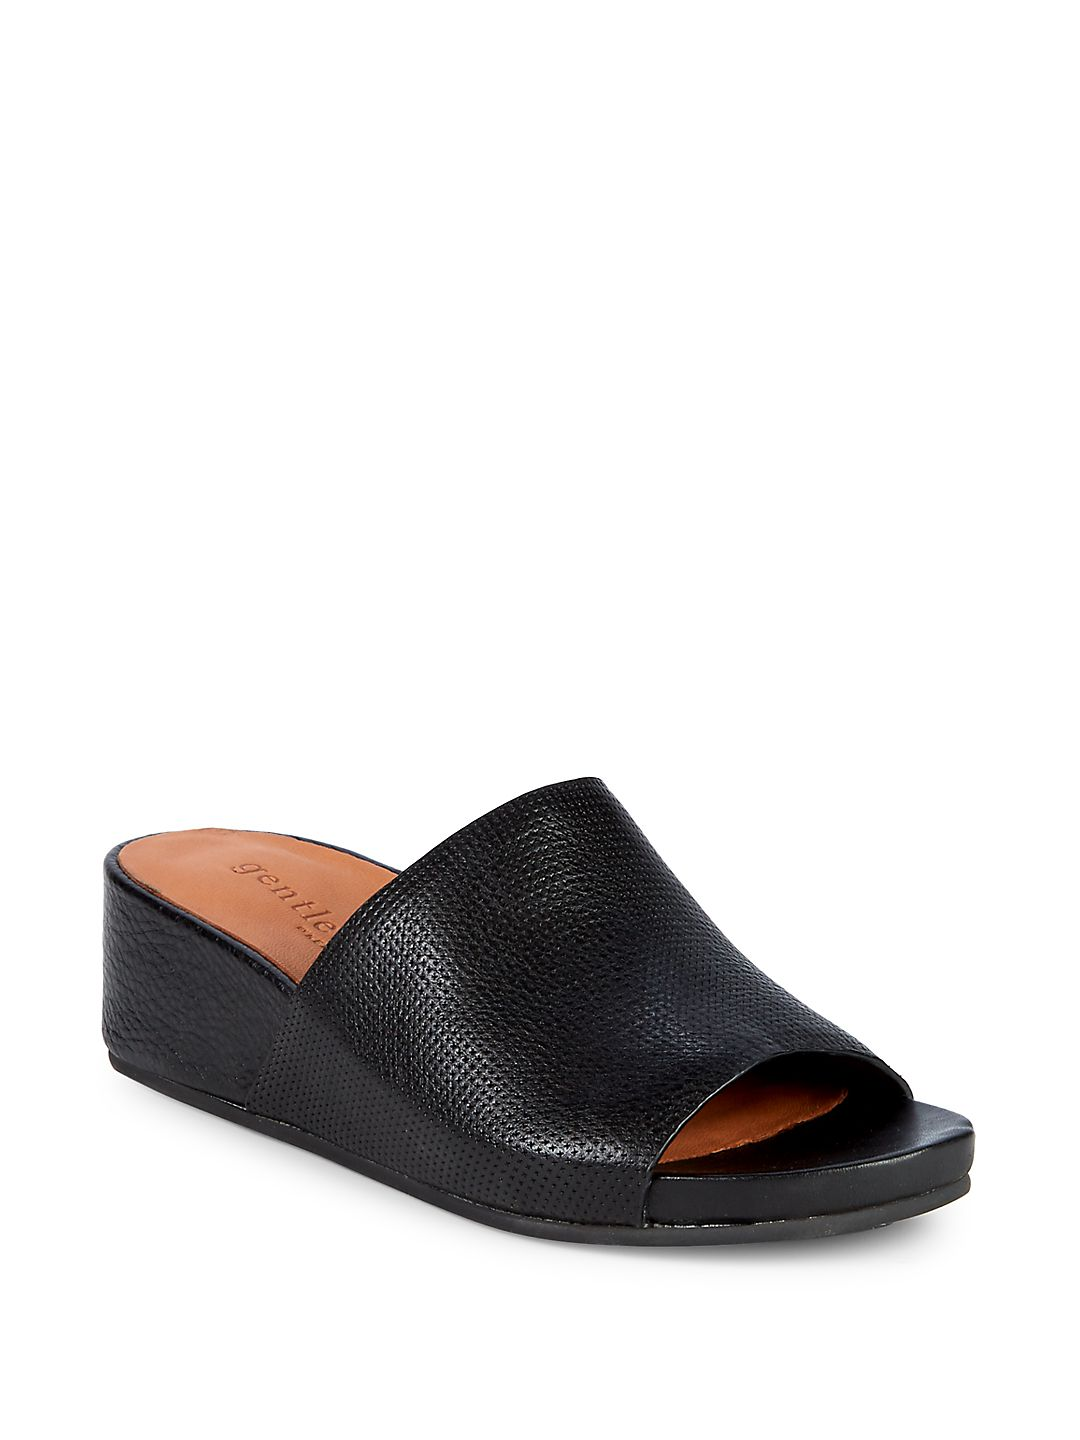 Gisele Textured Leather Wedge Slides